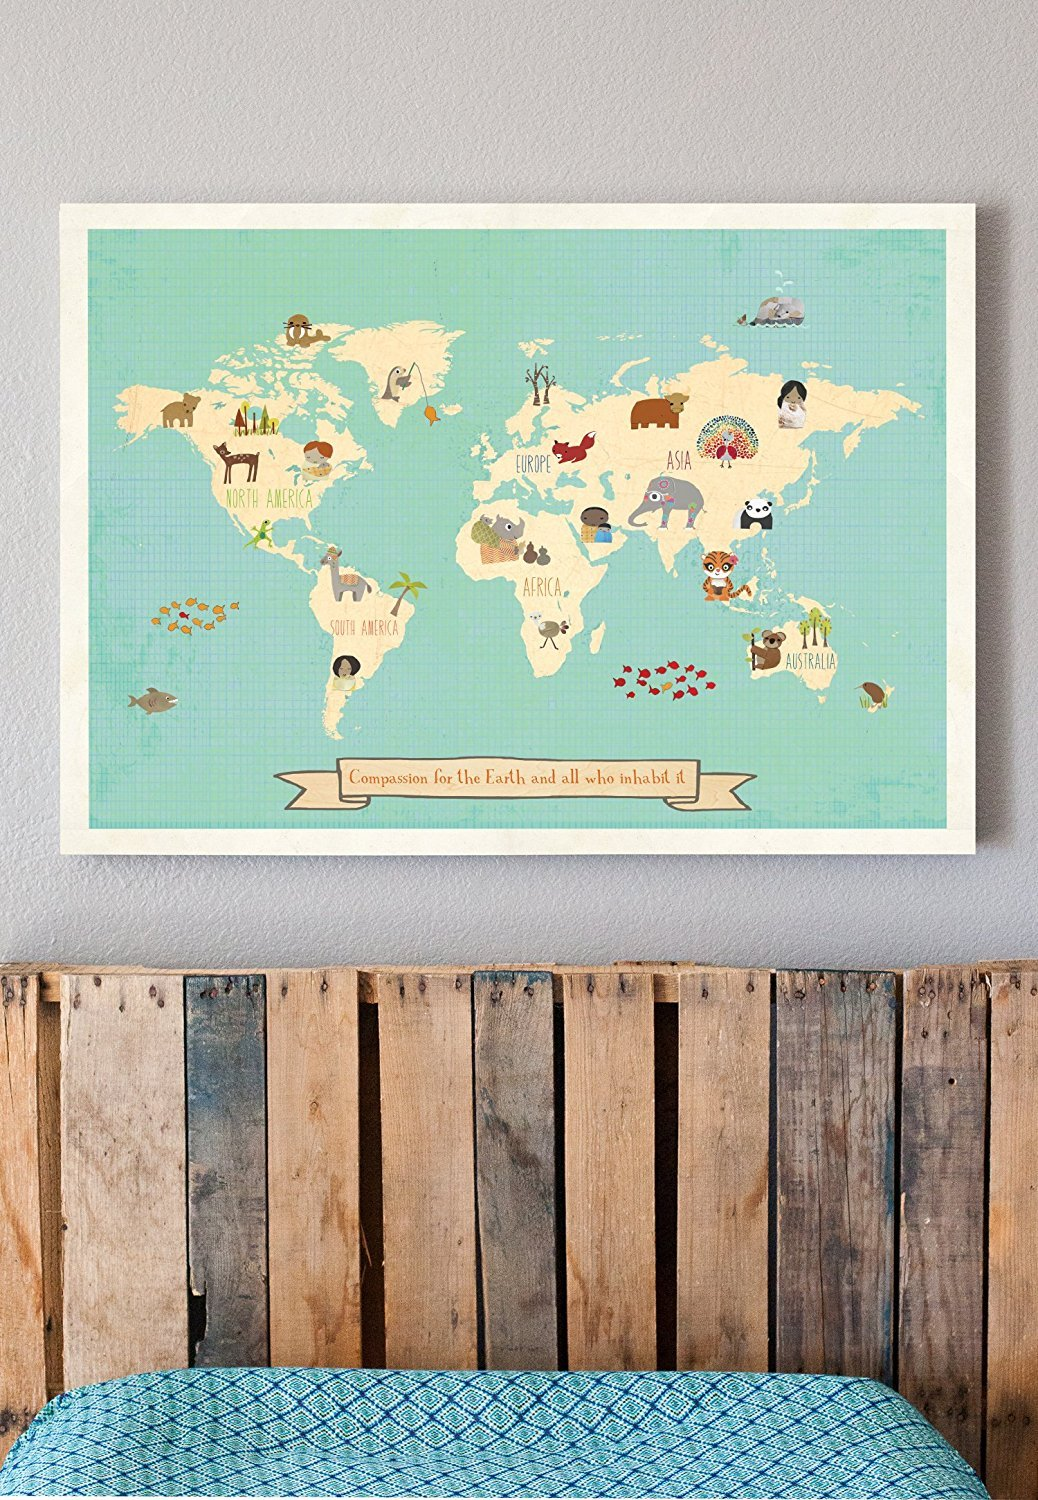 Nursery D/écor Nature Themed Nursery Kids Global Compassion World Map 11x14 Inch Print Nursery Wall Art Childrens Wall Art Map Kids Animal World Map Kids Art